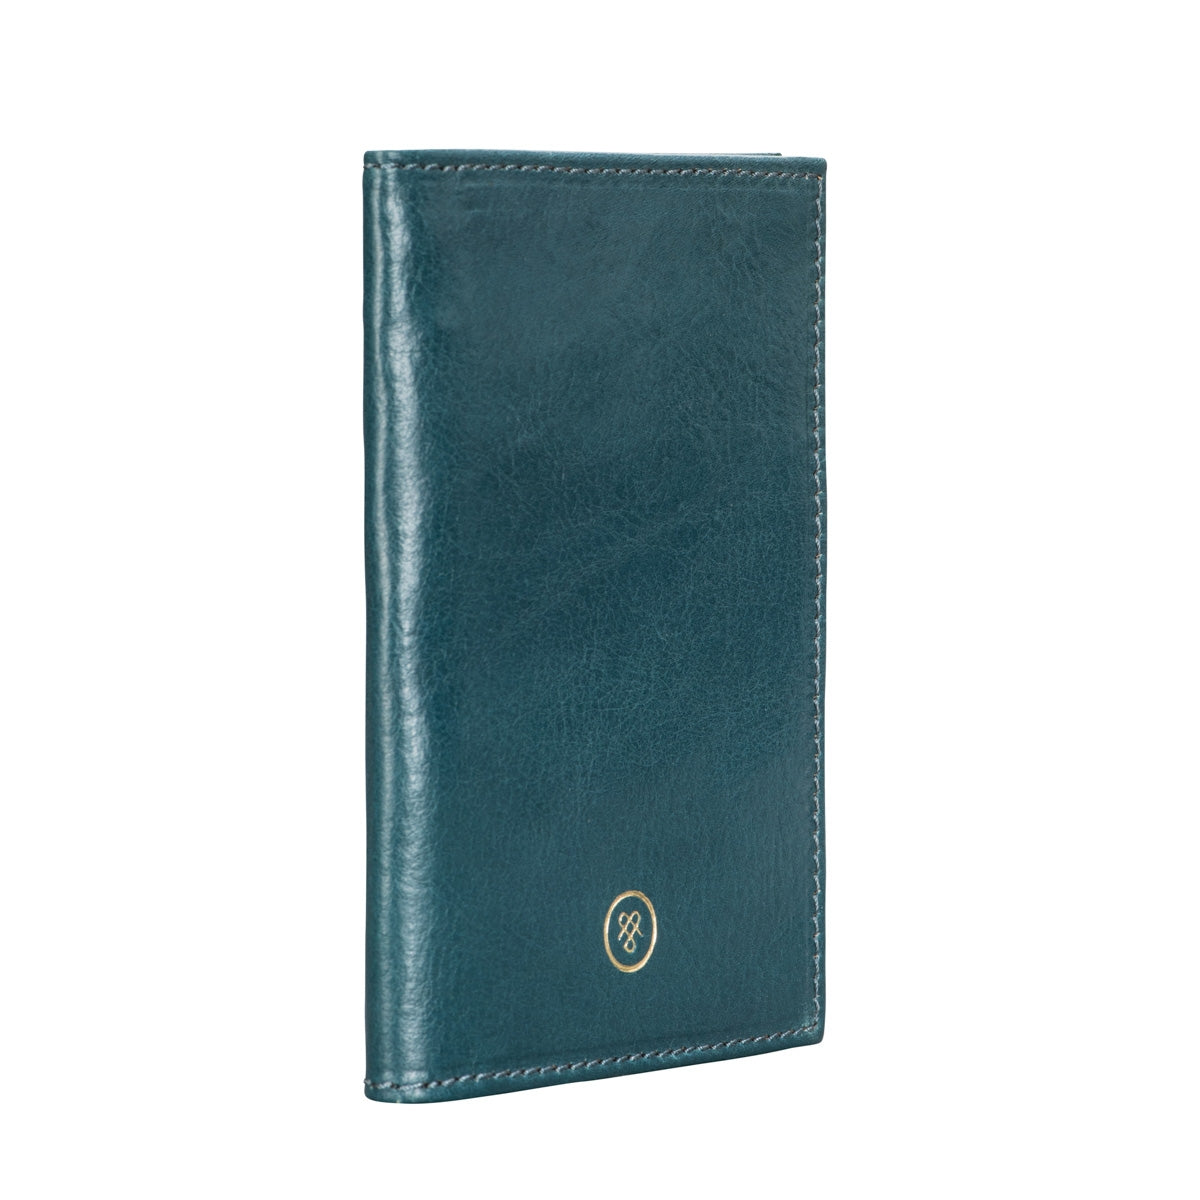 Image 2 of the 'Prato' Leather Passport Cover